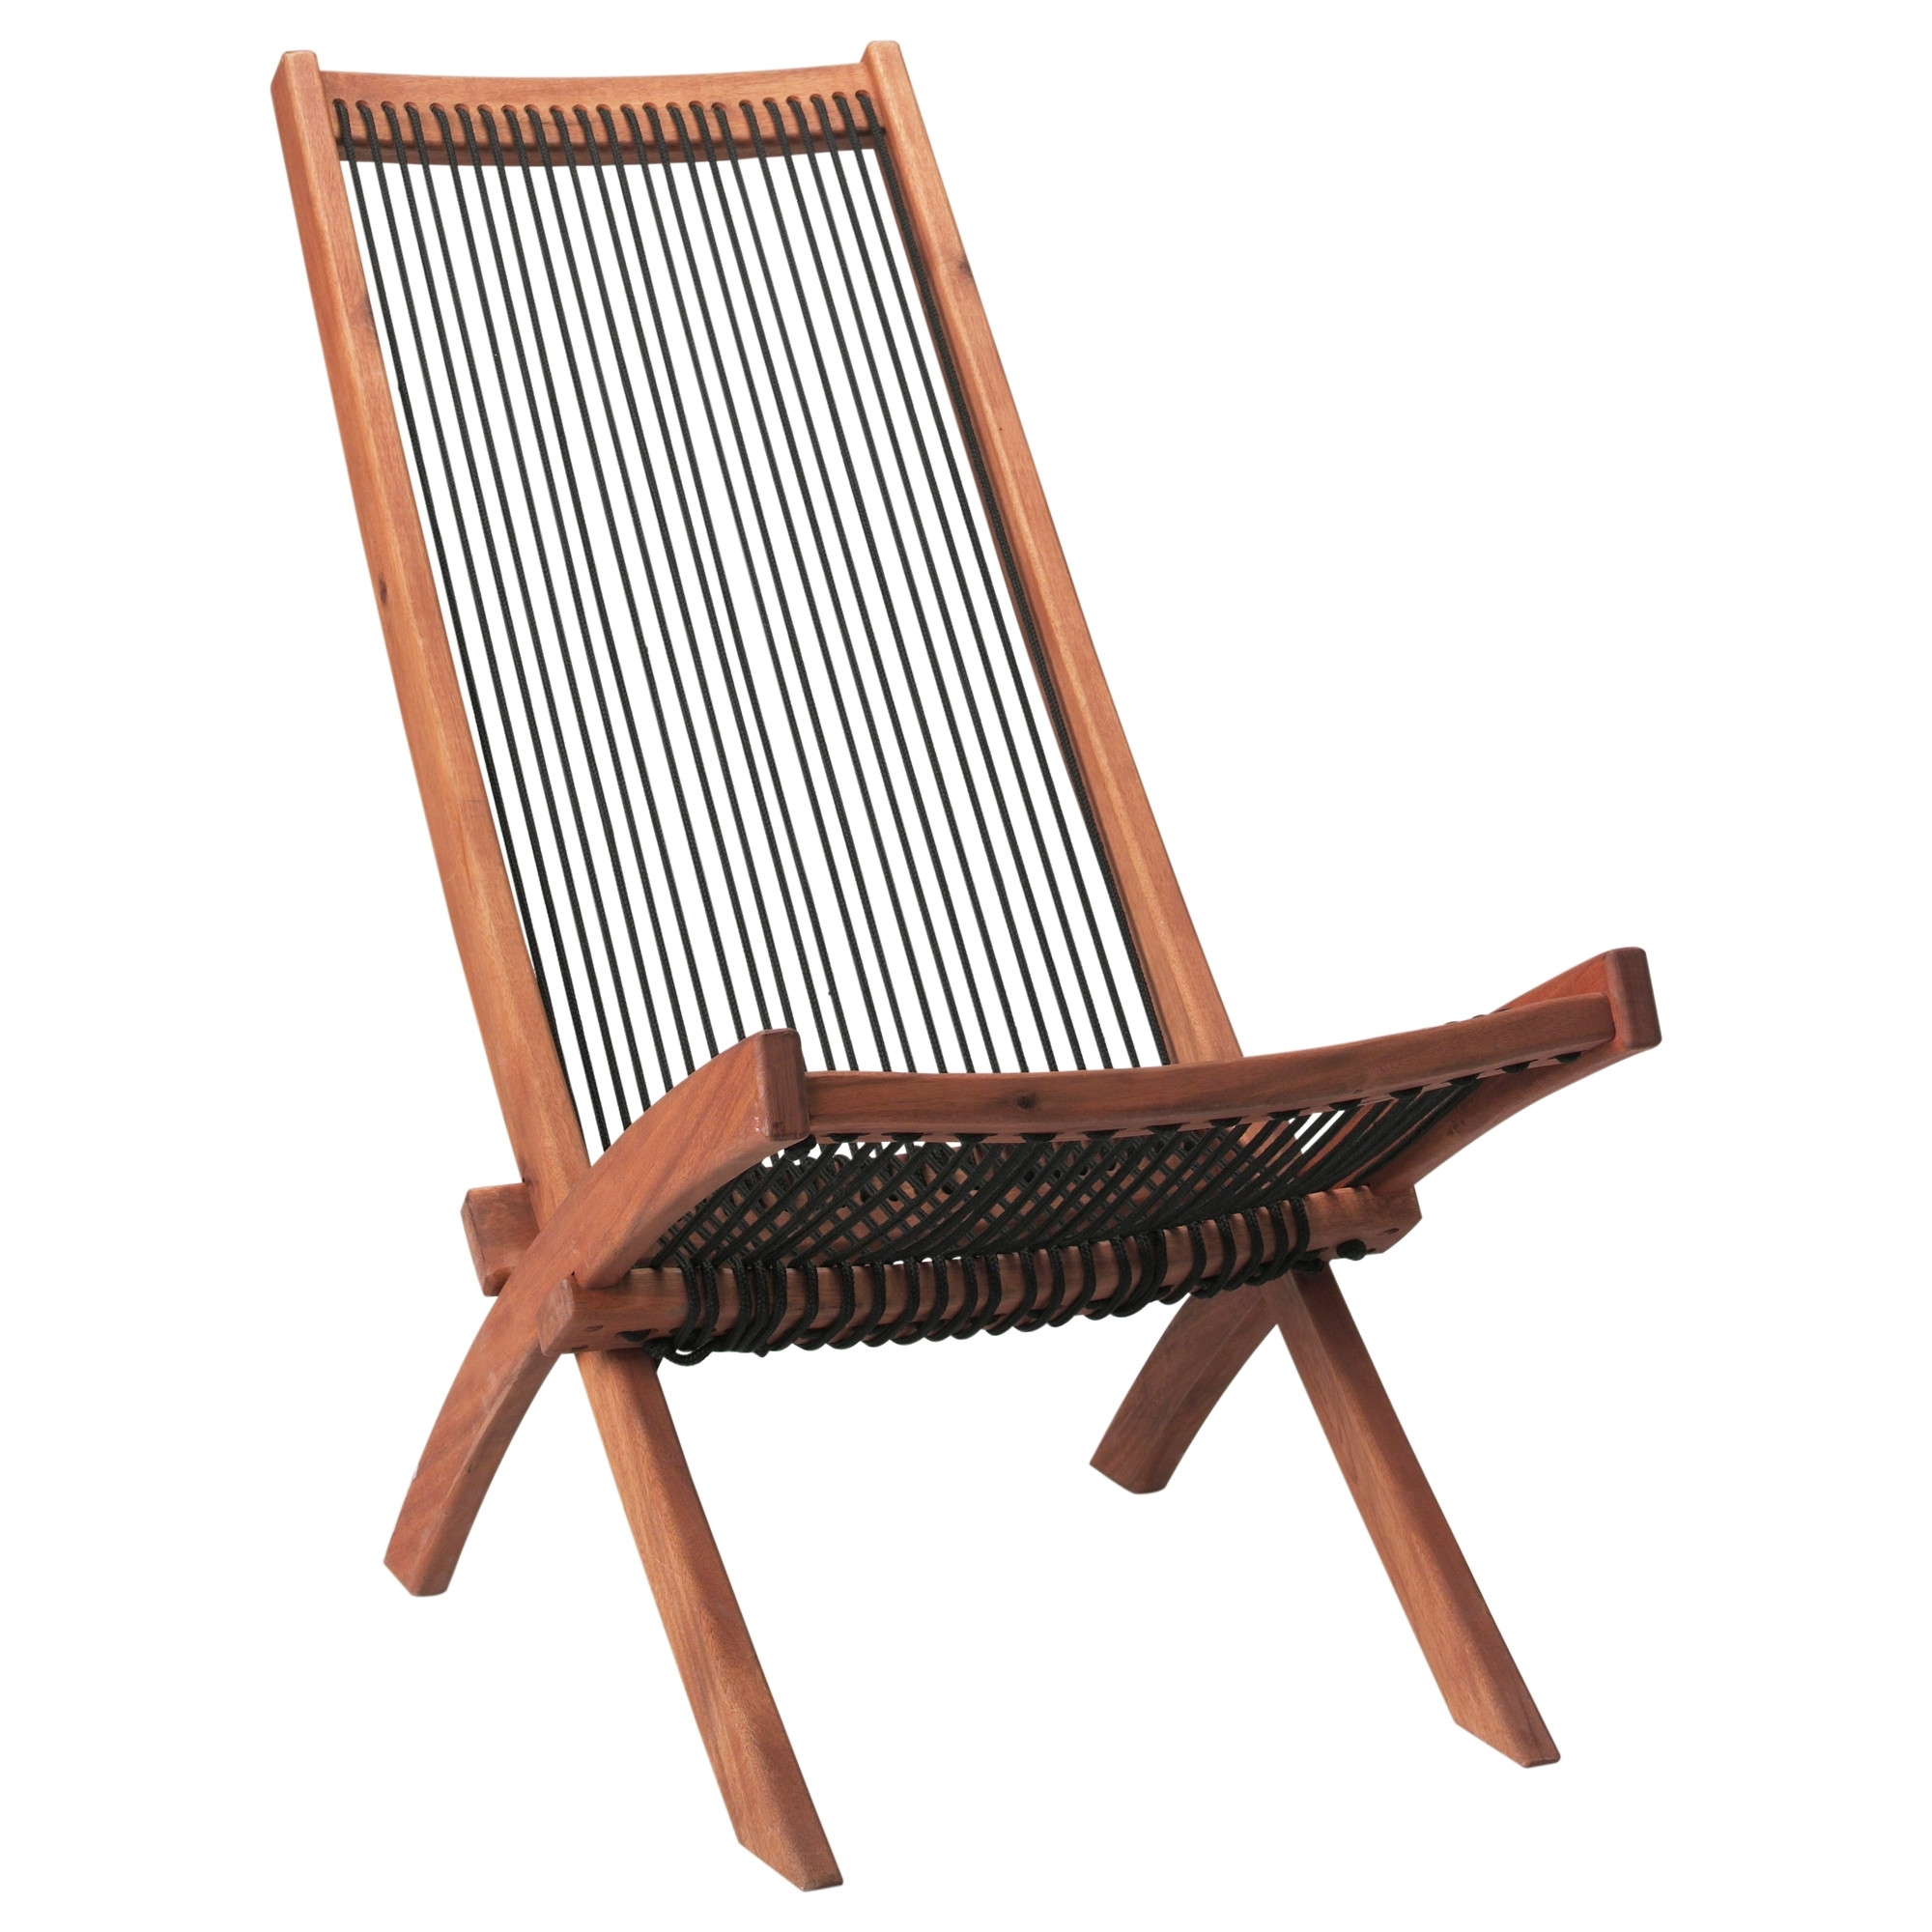 2018 Chaise Lounge Chairs For Backyard With Regard To Brommö Chaise, Outdoor – Ikea (View 2 of 15)